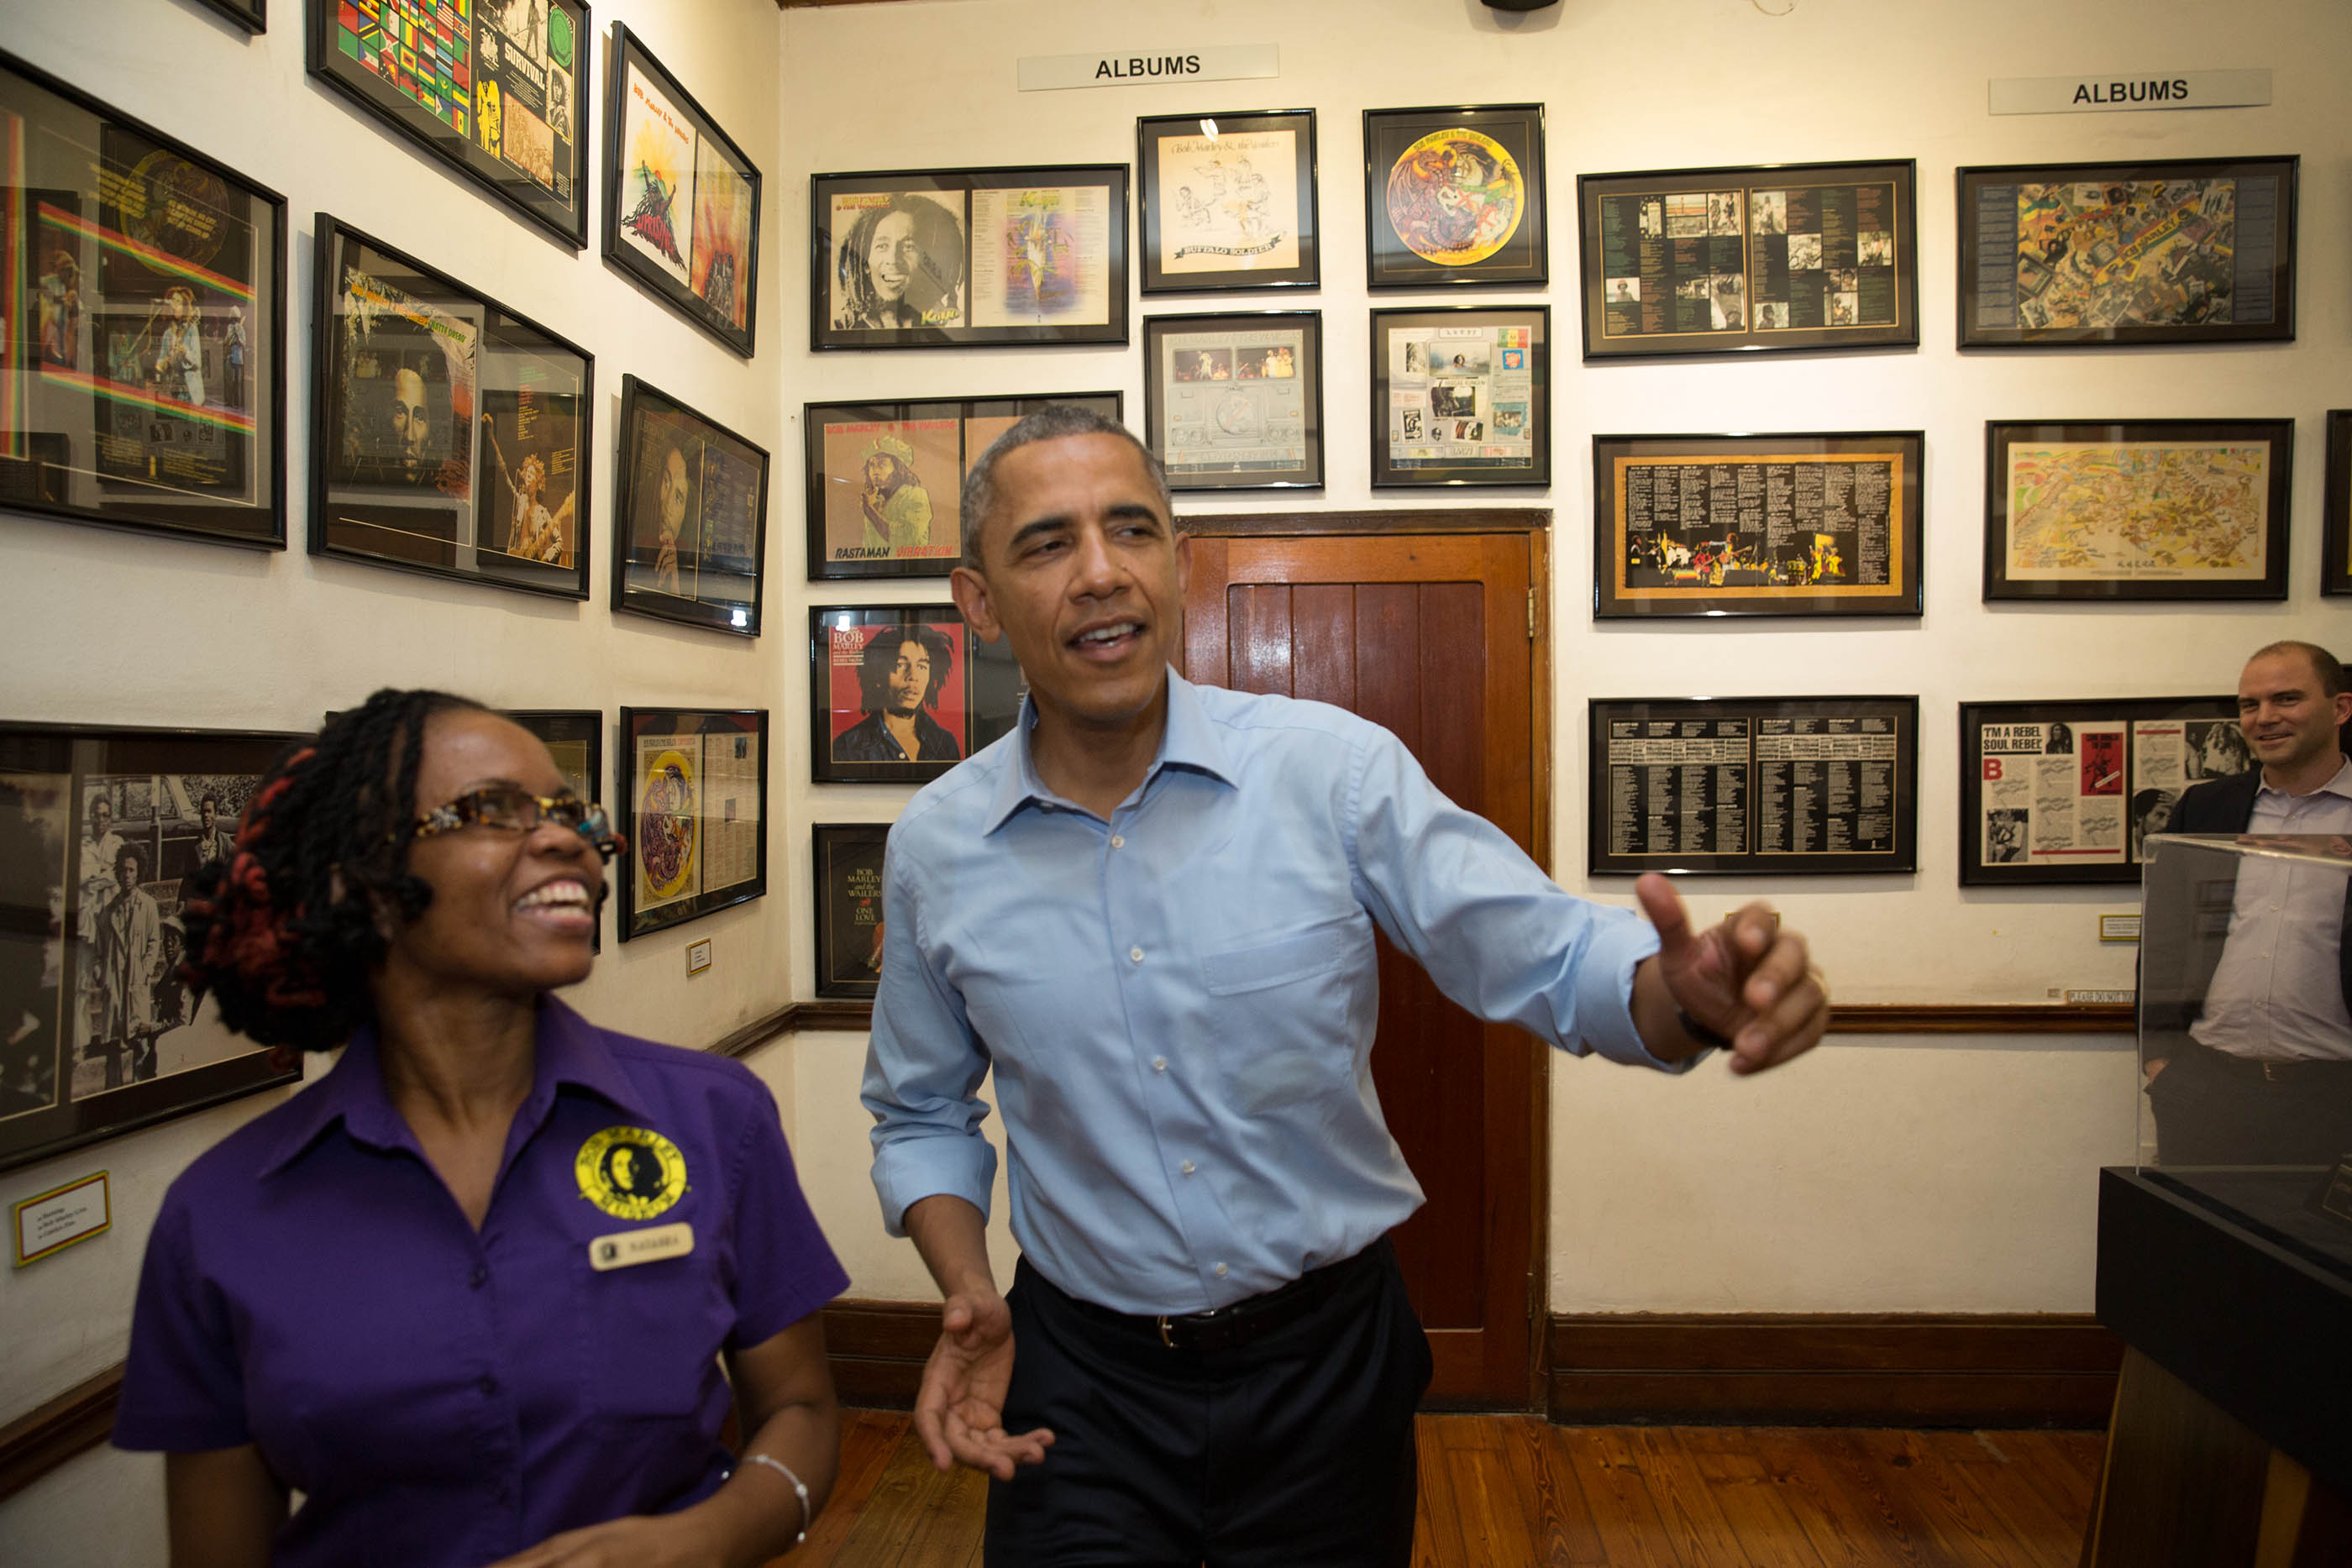 President Obama Visits the Bob Marley Museum